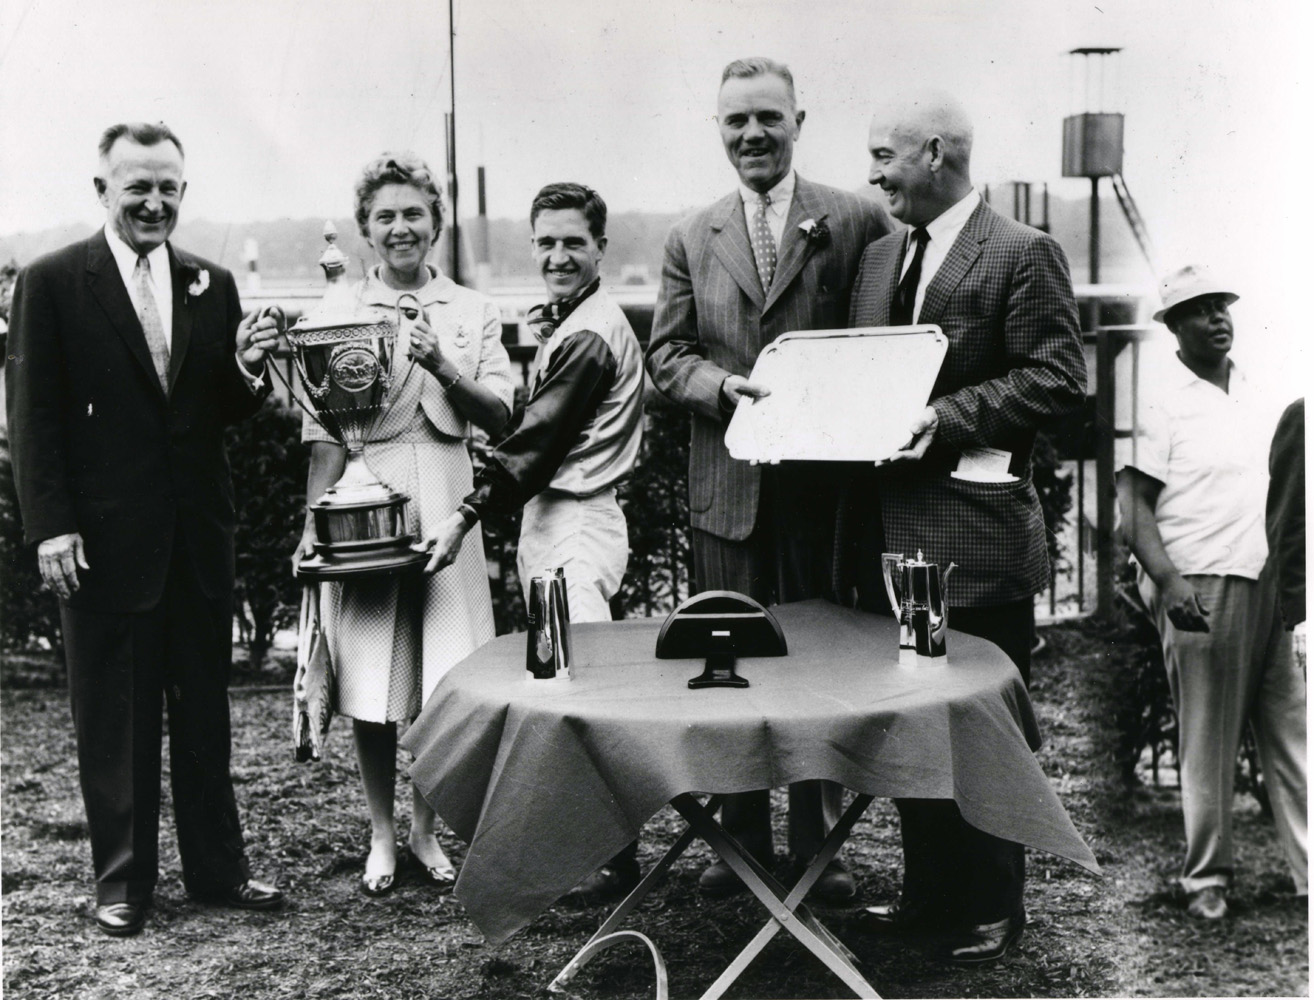 Jockey Bobby Ussery at a trophy presentation after winning a race (Mike Sirico/Museum Collection)